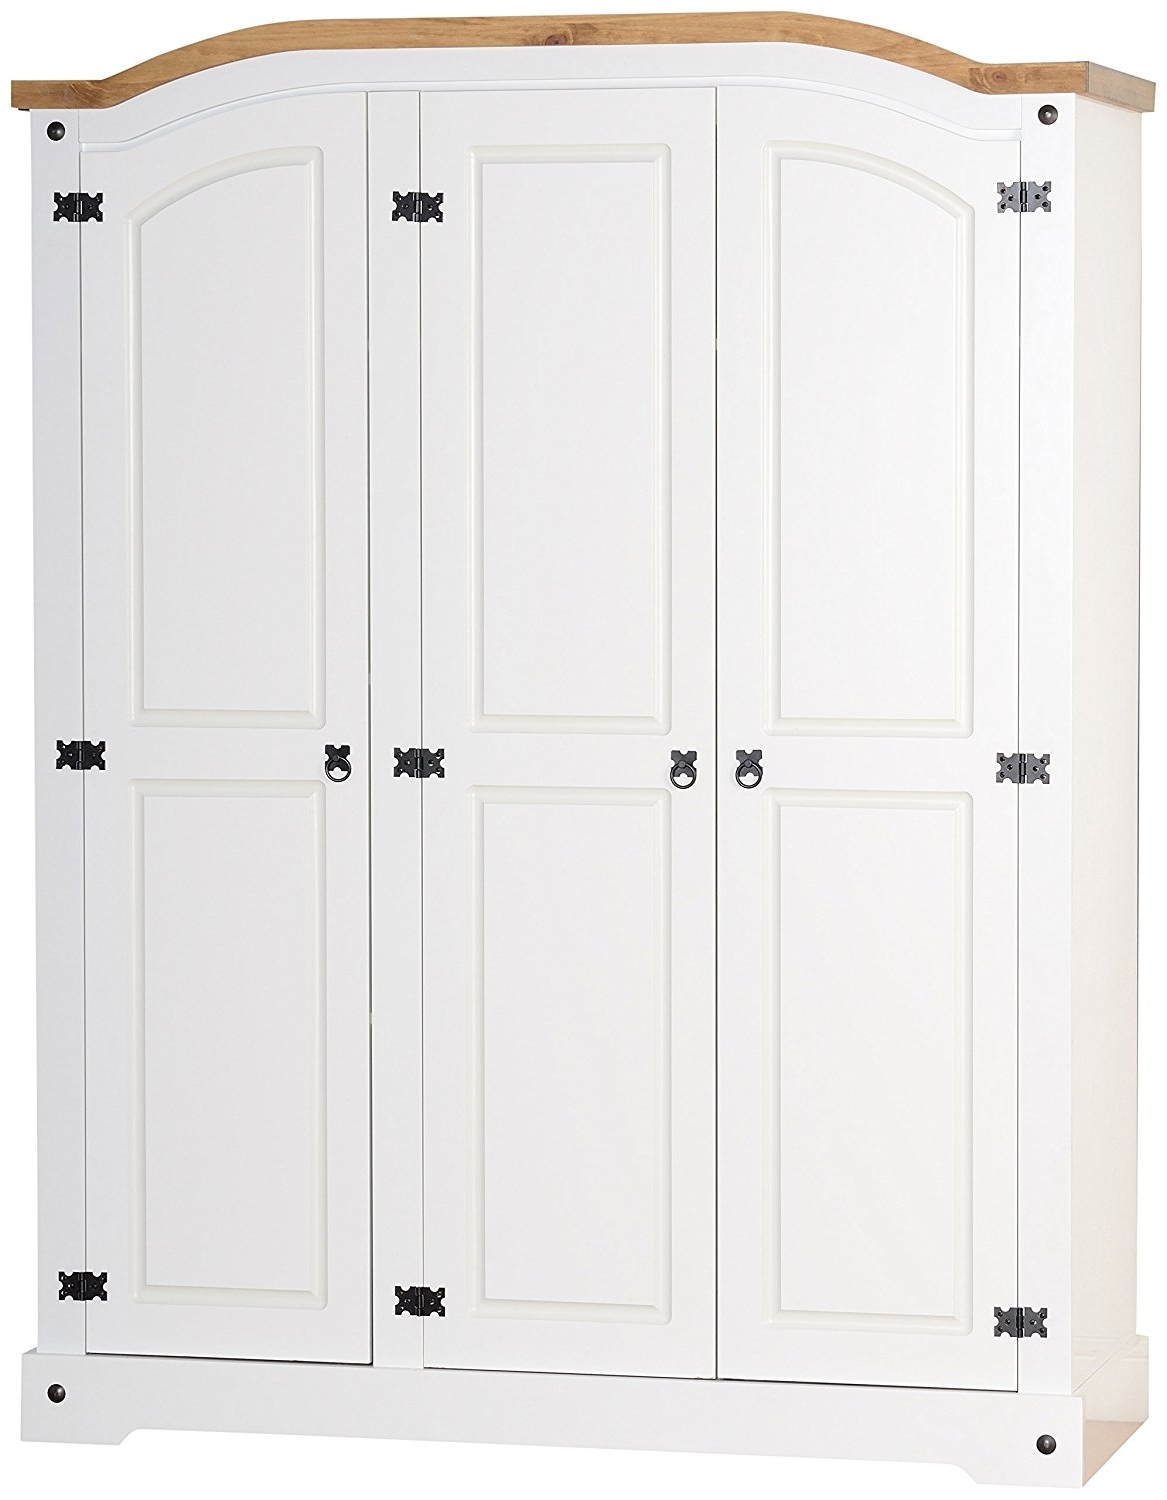 Seconique Corona 3 Door Wardrobe – White/distressed Waxed Pine In Well Known Whitewash Wardrobes (View 8 of 15)